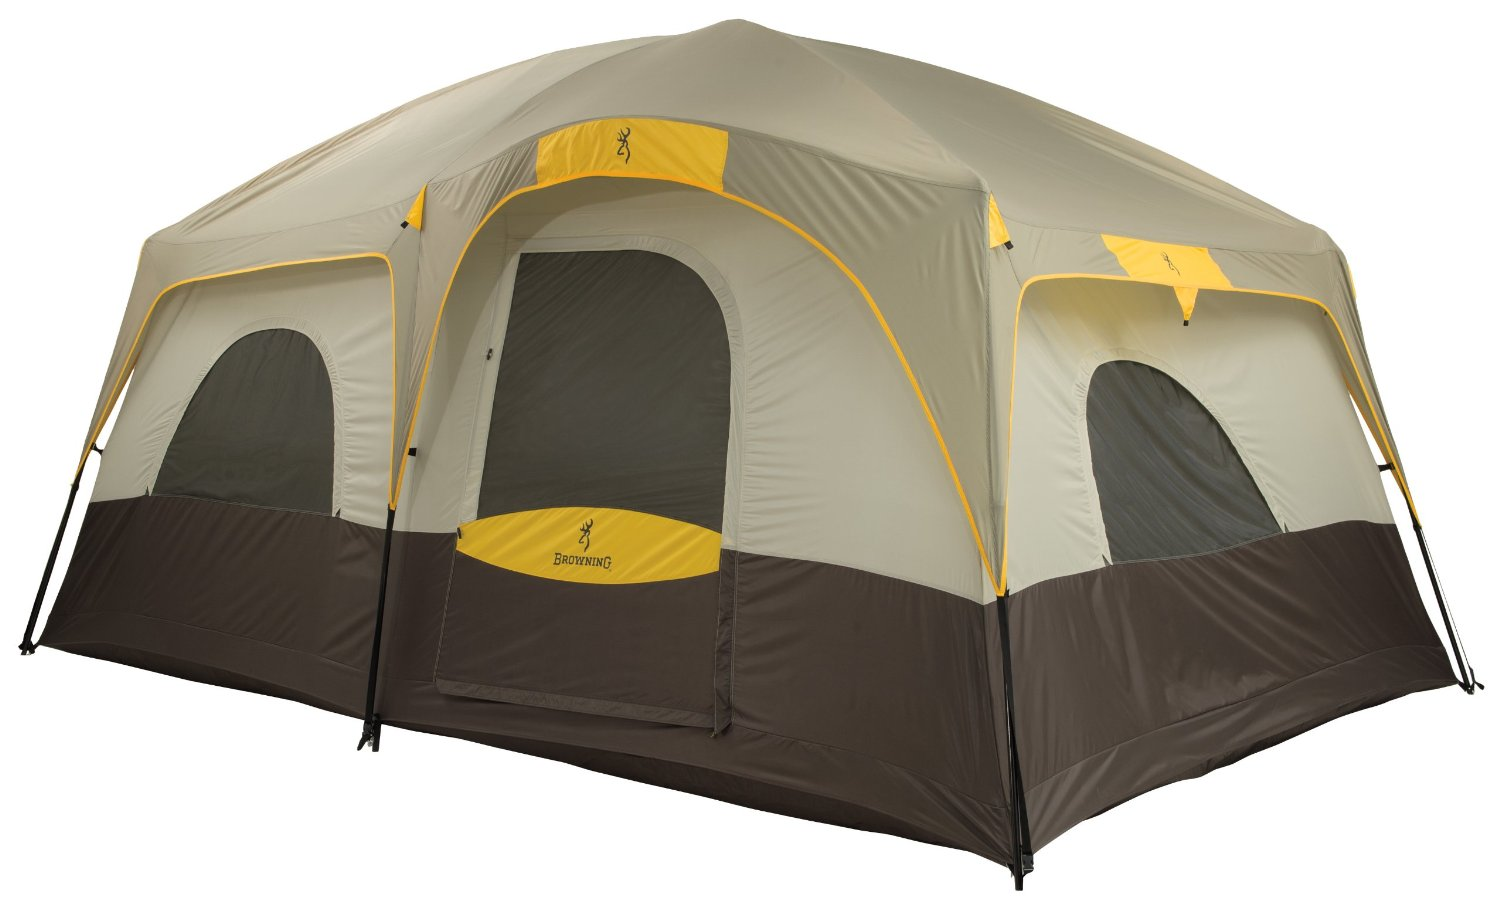 1 Browning Camping Big Horn Tent